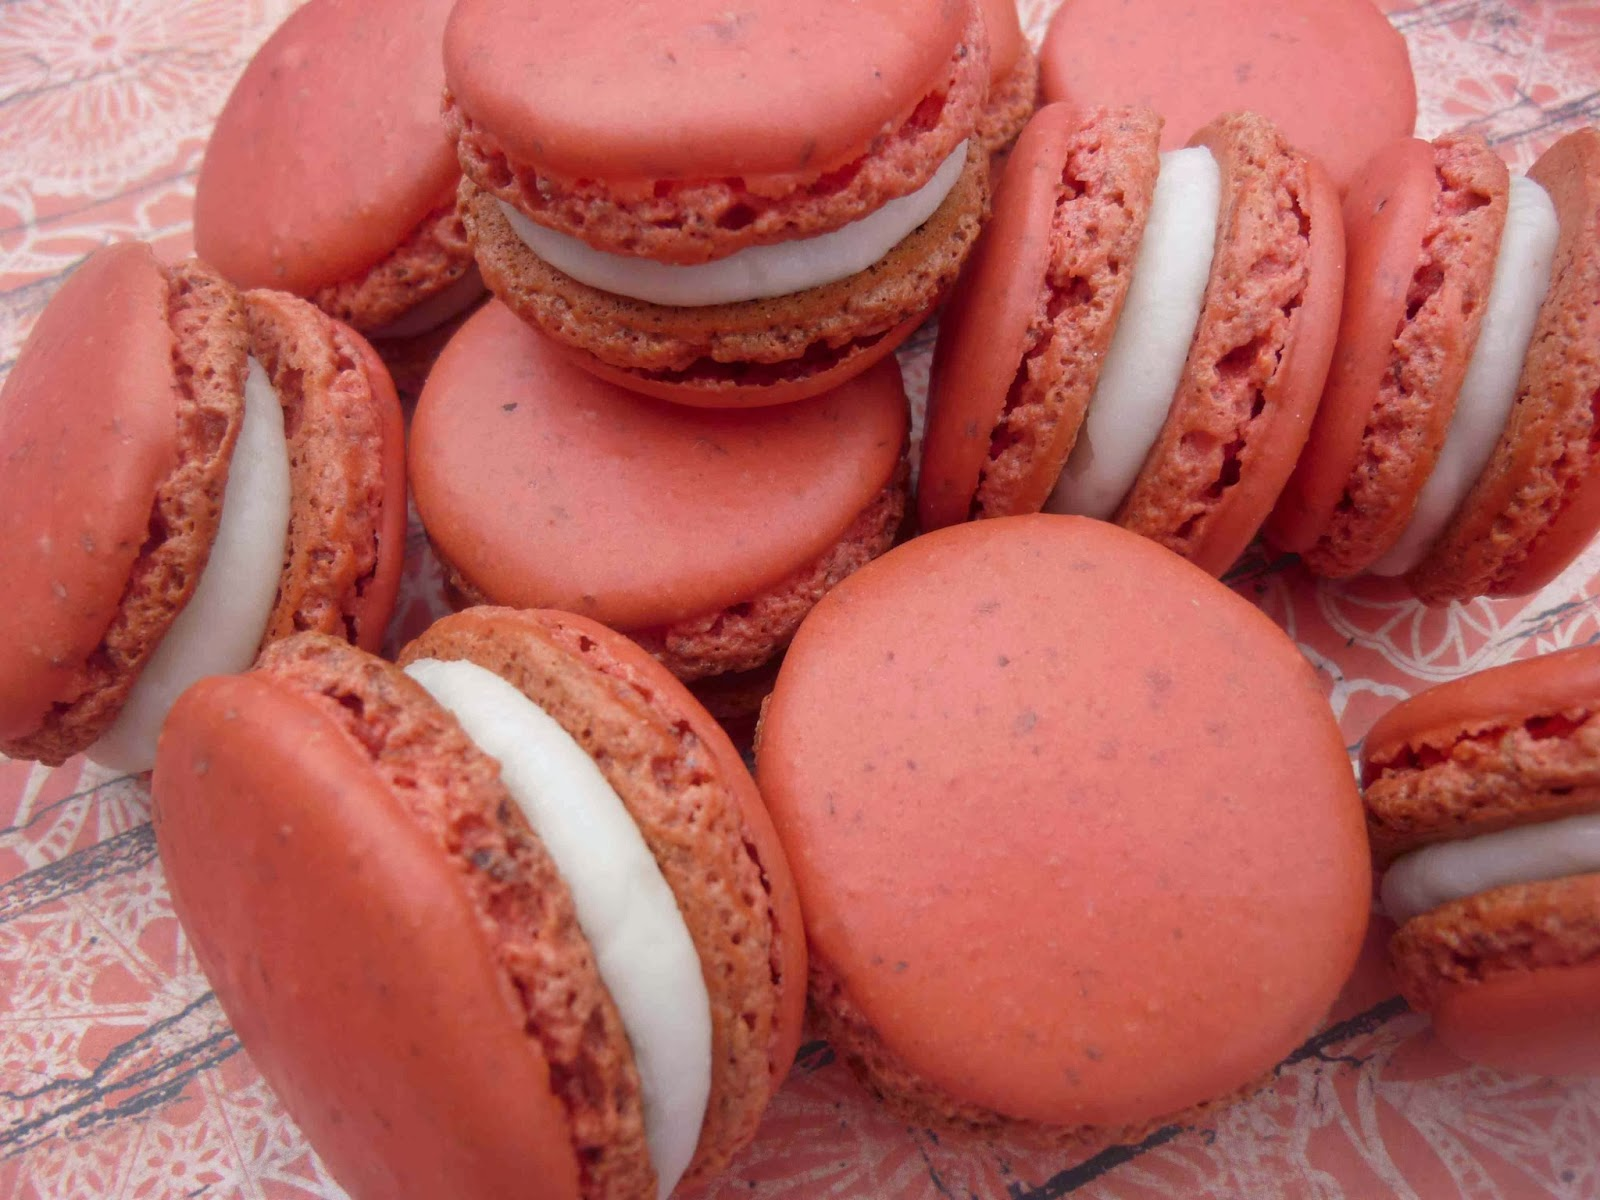 ... Mad Hausfrau: Rocking the Red Pump Today with Peony French Macarons